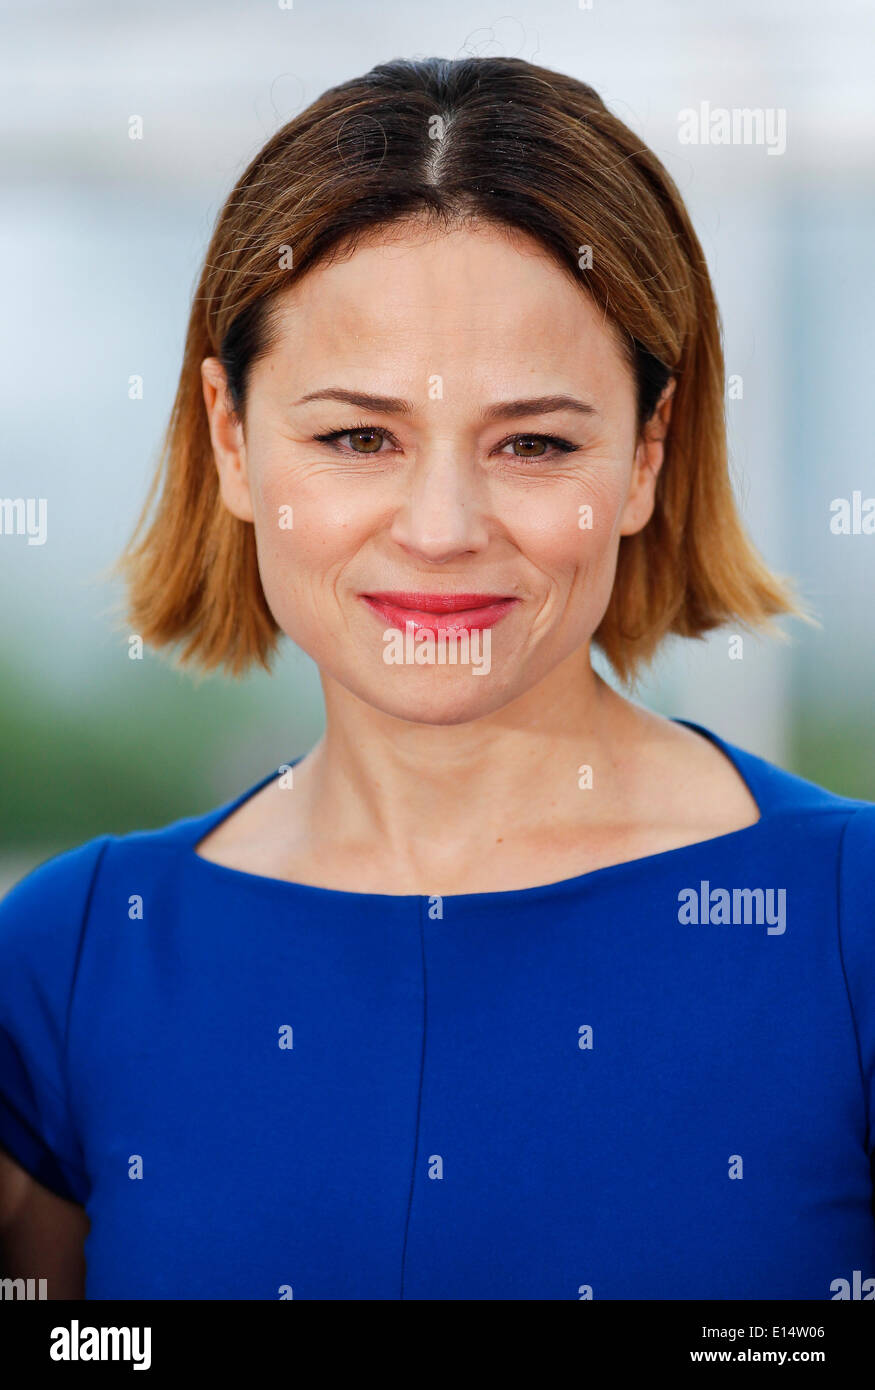 SUZANNE CLEMENT MOMMY. PHOTOCALL. 67TH CANNES FILM FESTIVAL CANNES  FRANCE 22 May 2014 - Stock Image